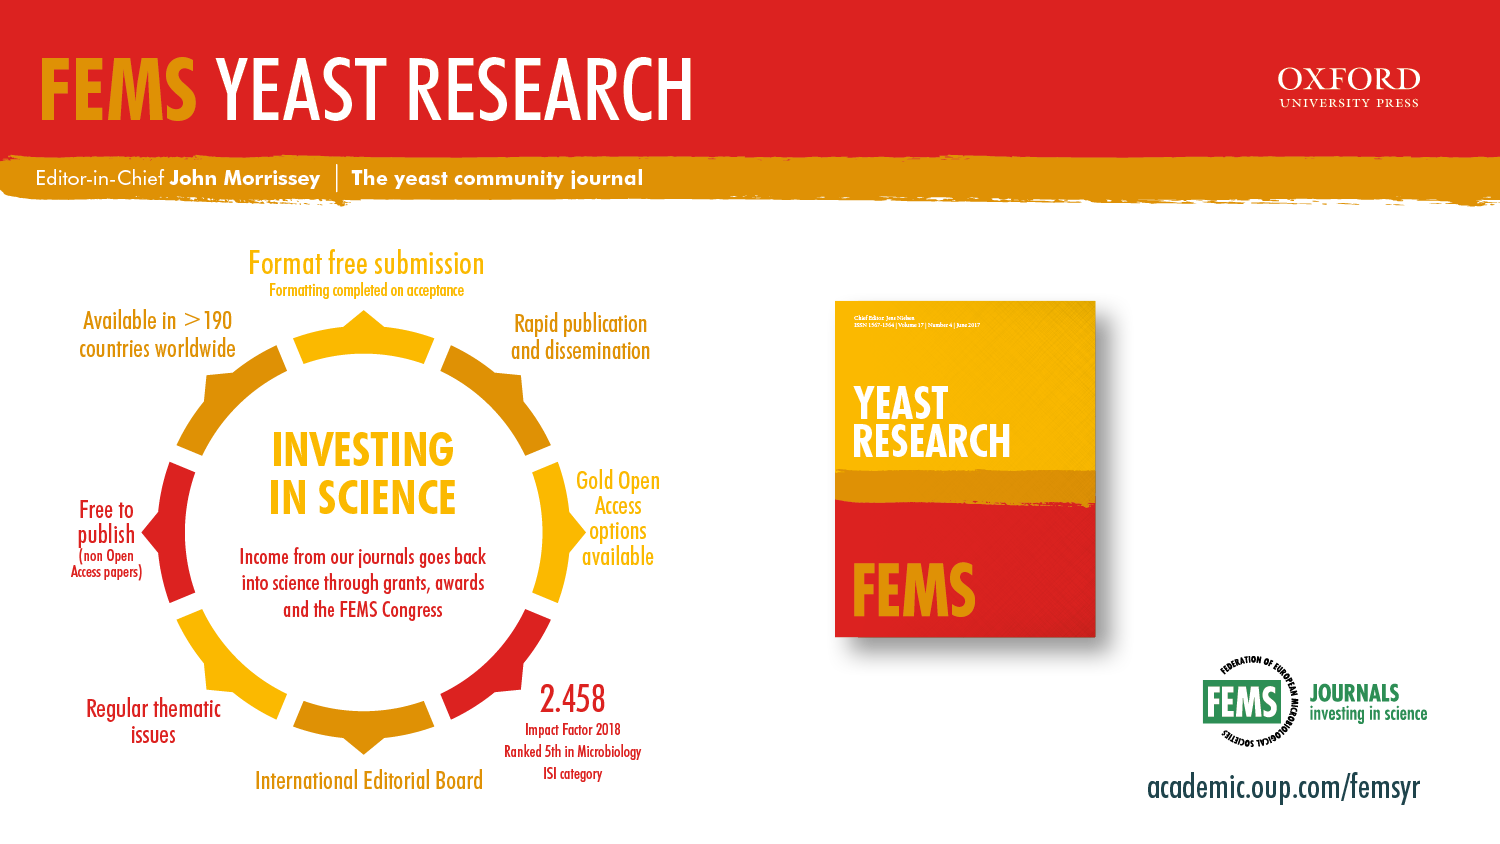 About Fems Yeast Research Oxford Academic